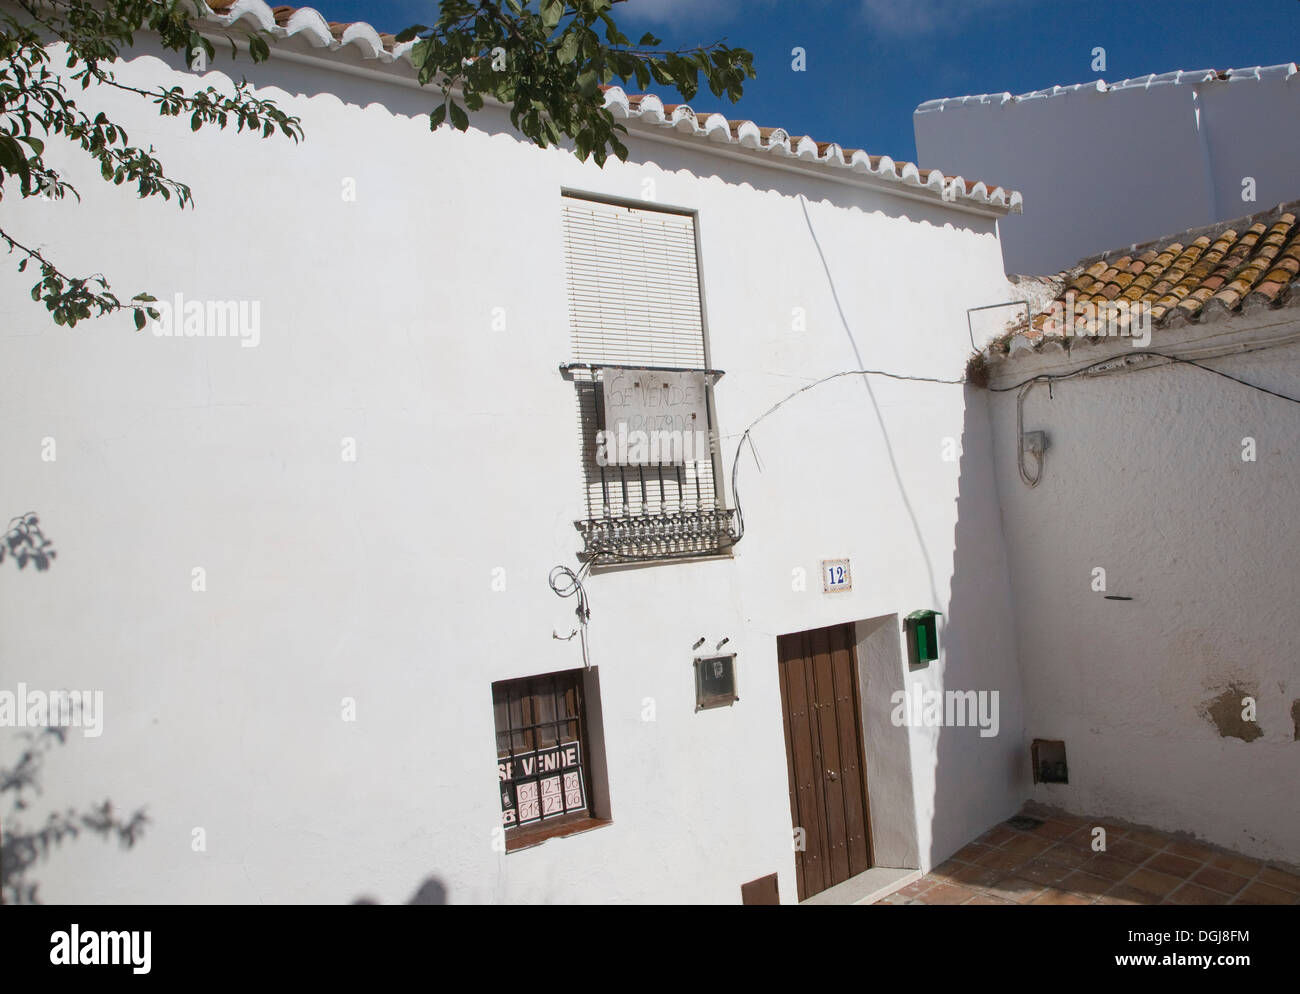 House for sale sign Comares village, Axarquía region, Malaga province, Andalusia, Spain - Stock Image